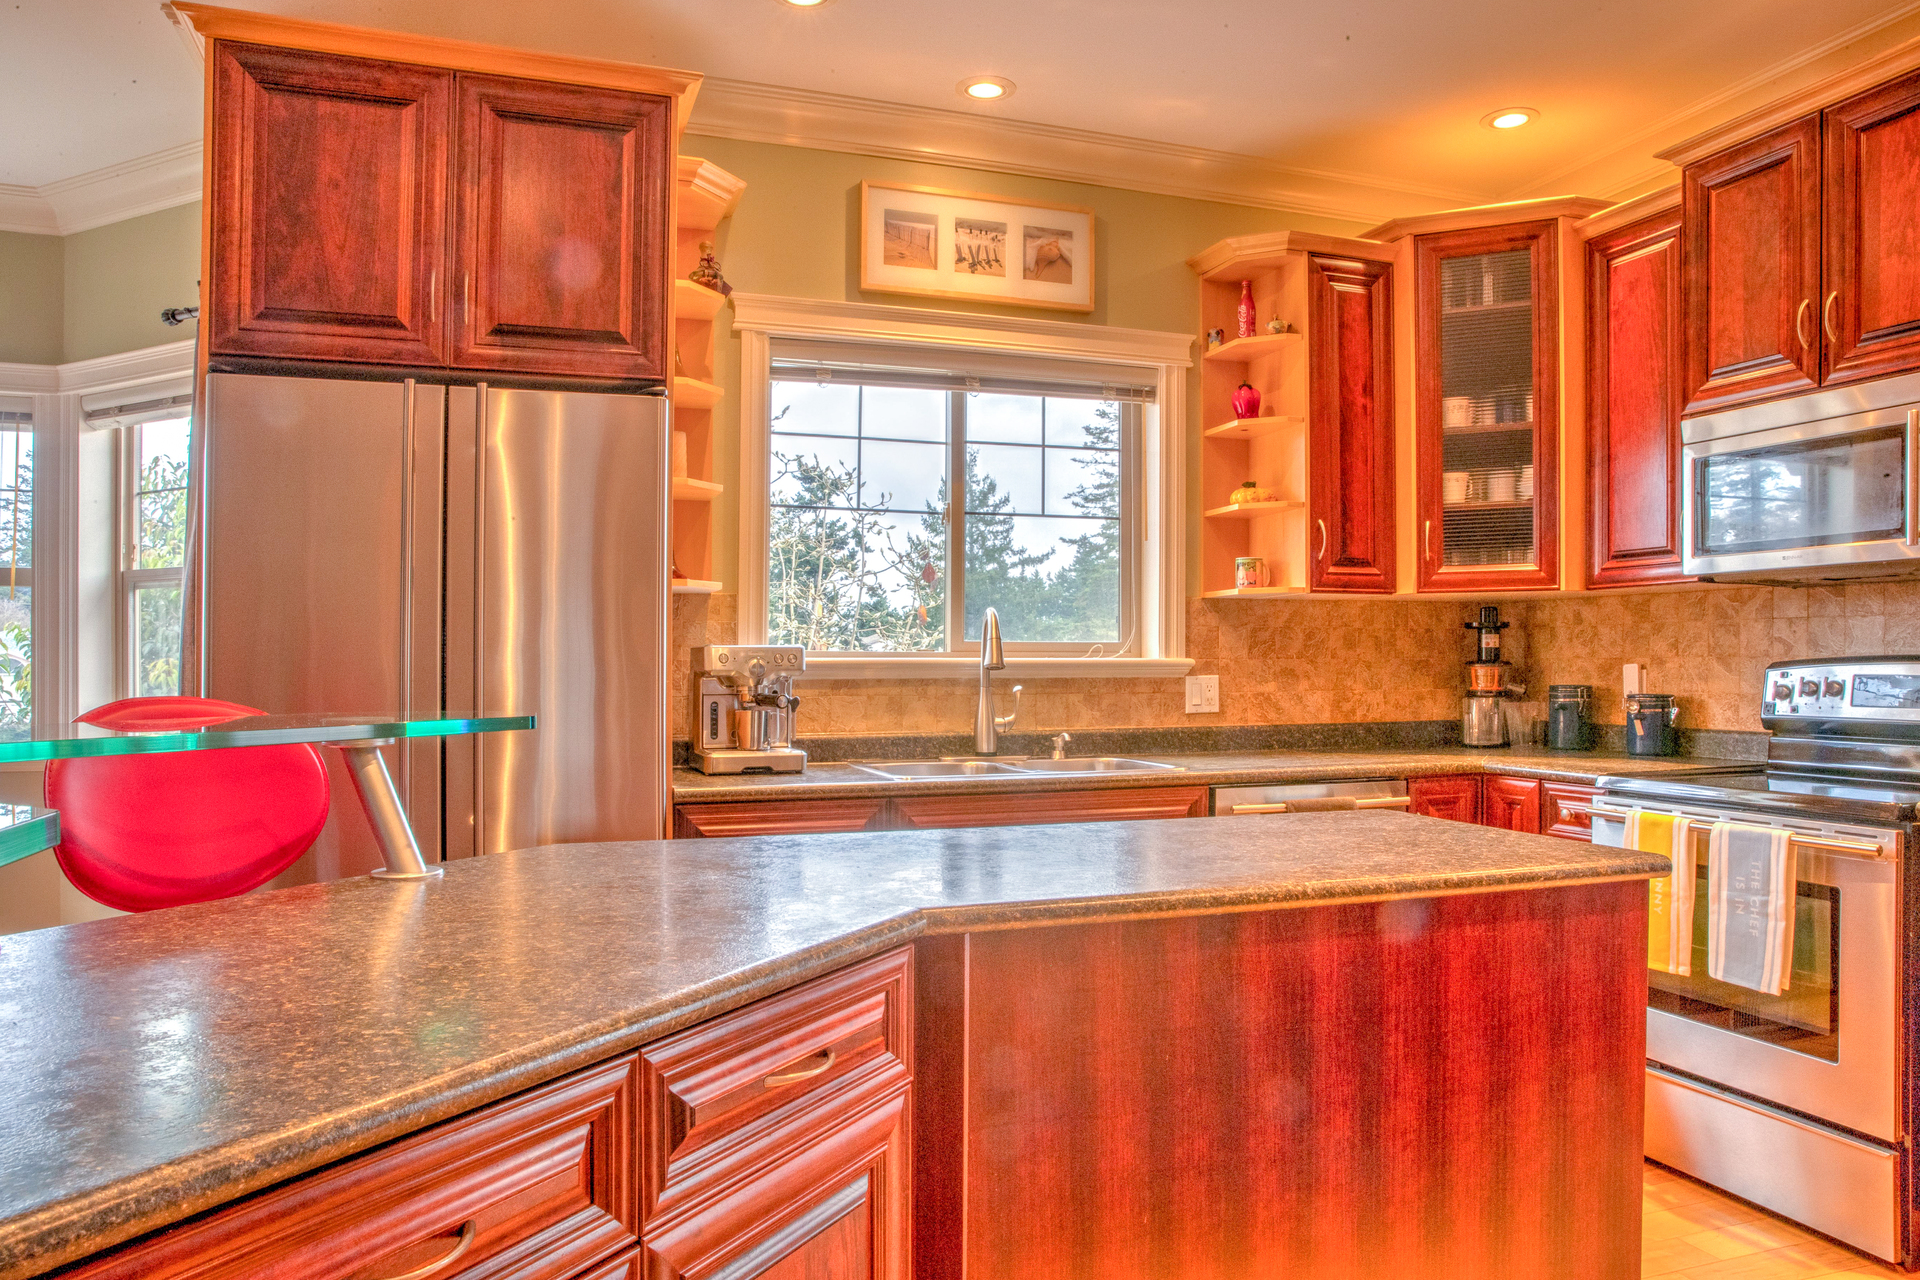 Open Concept Kitchen With Central Island at 2741 Cornerstone Terrace, Mill Hill, Langford